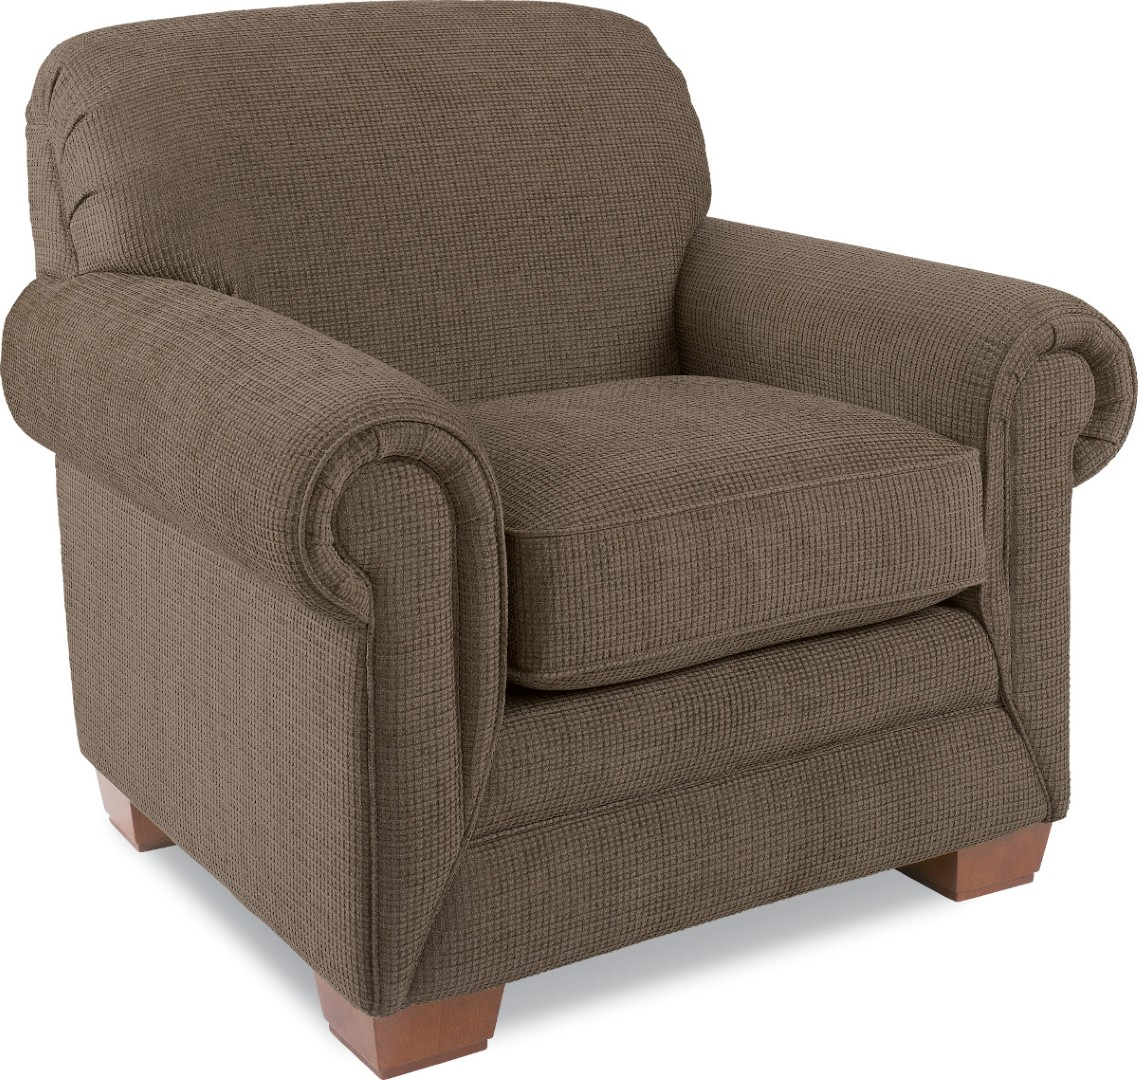 Mackenzie Chair And Ottoman Town Amp Country Furniture